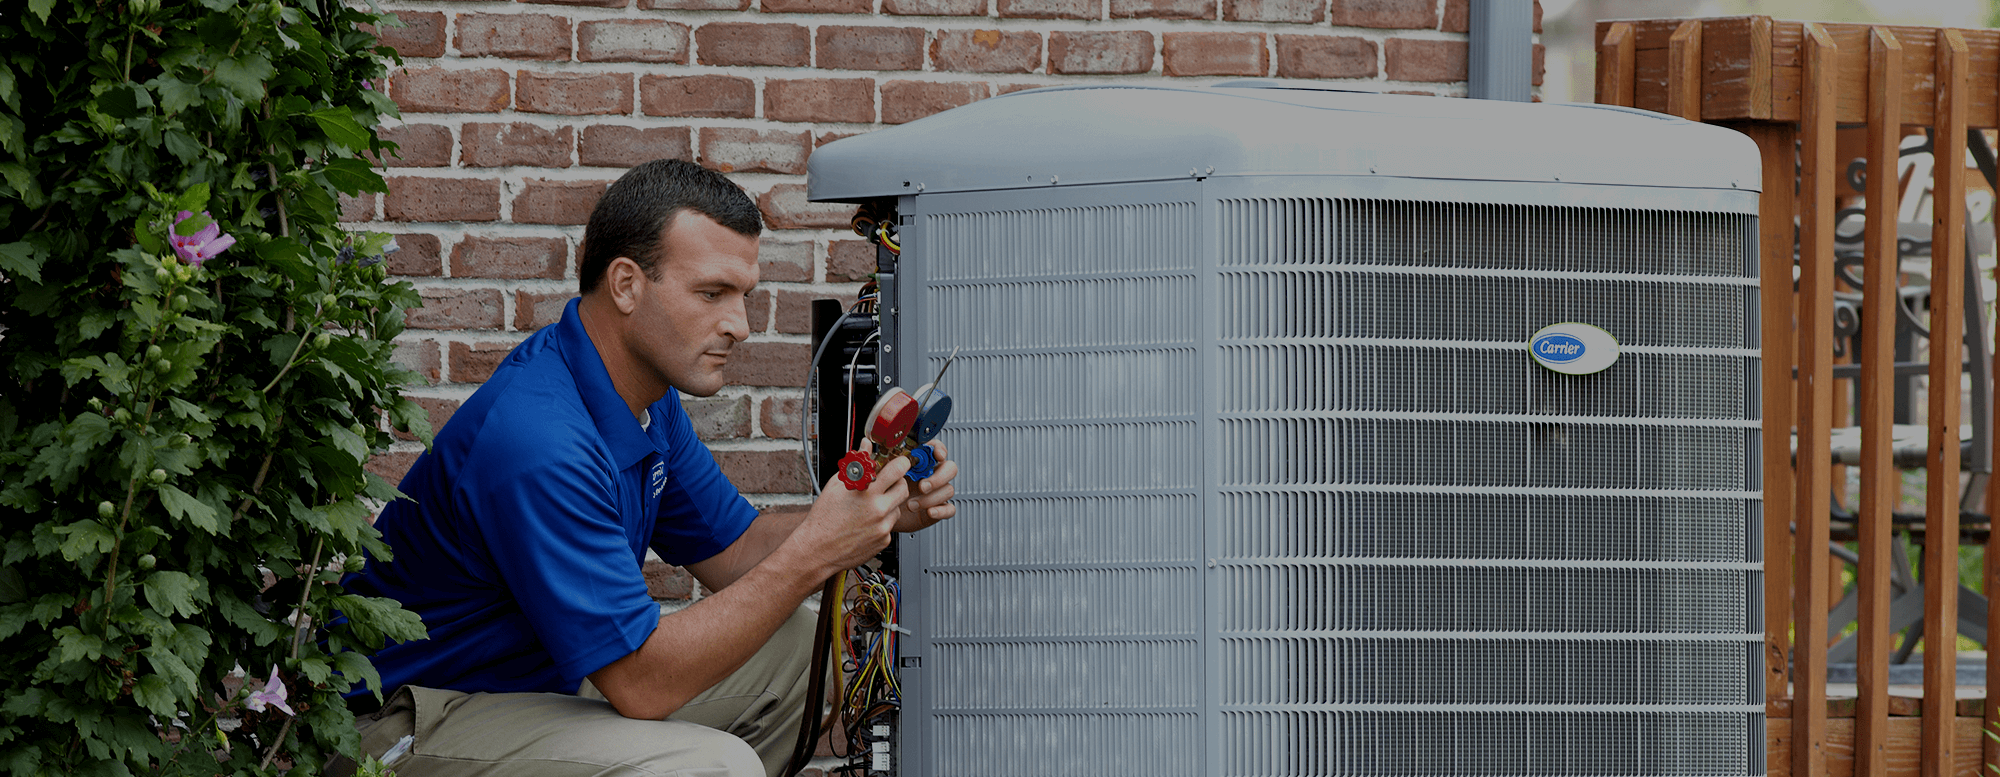 Maintenance Check | Stiles Heating, Cooling, & Plumbing